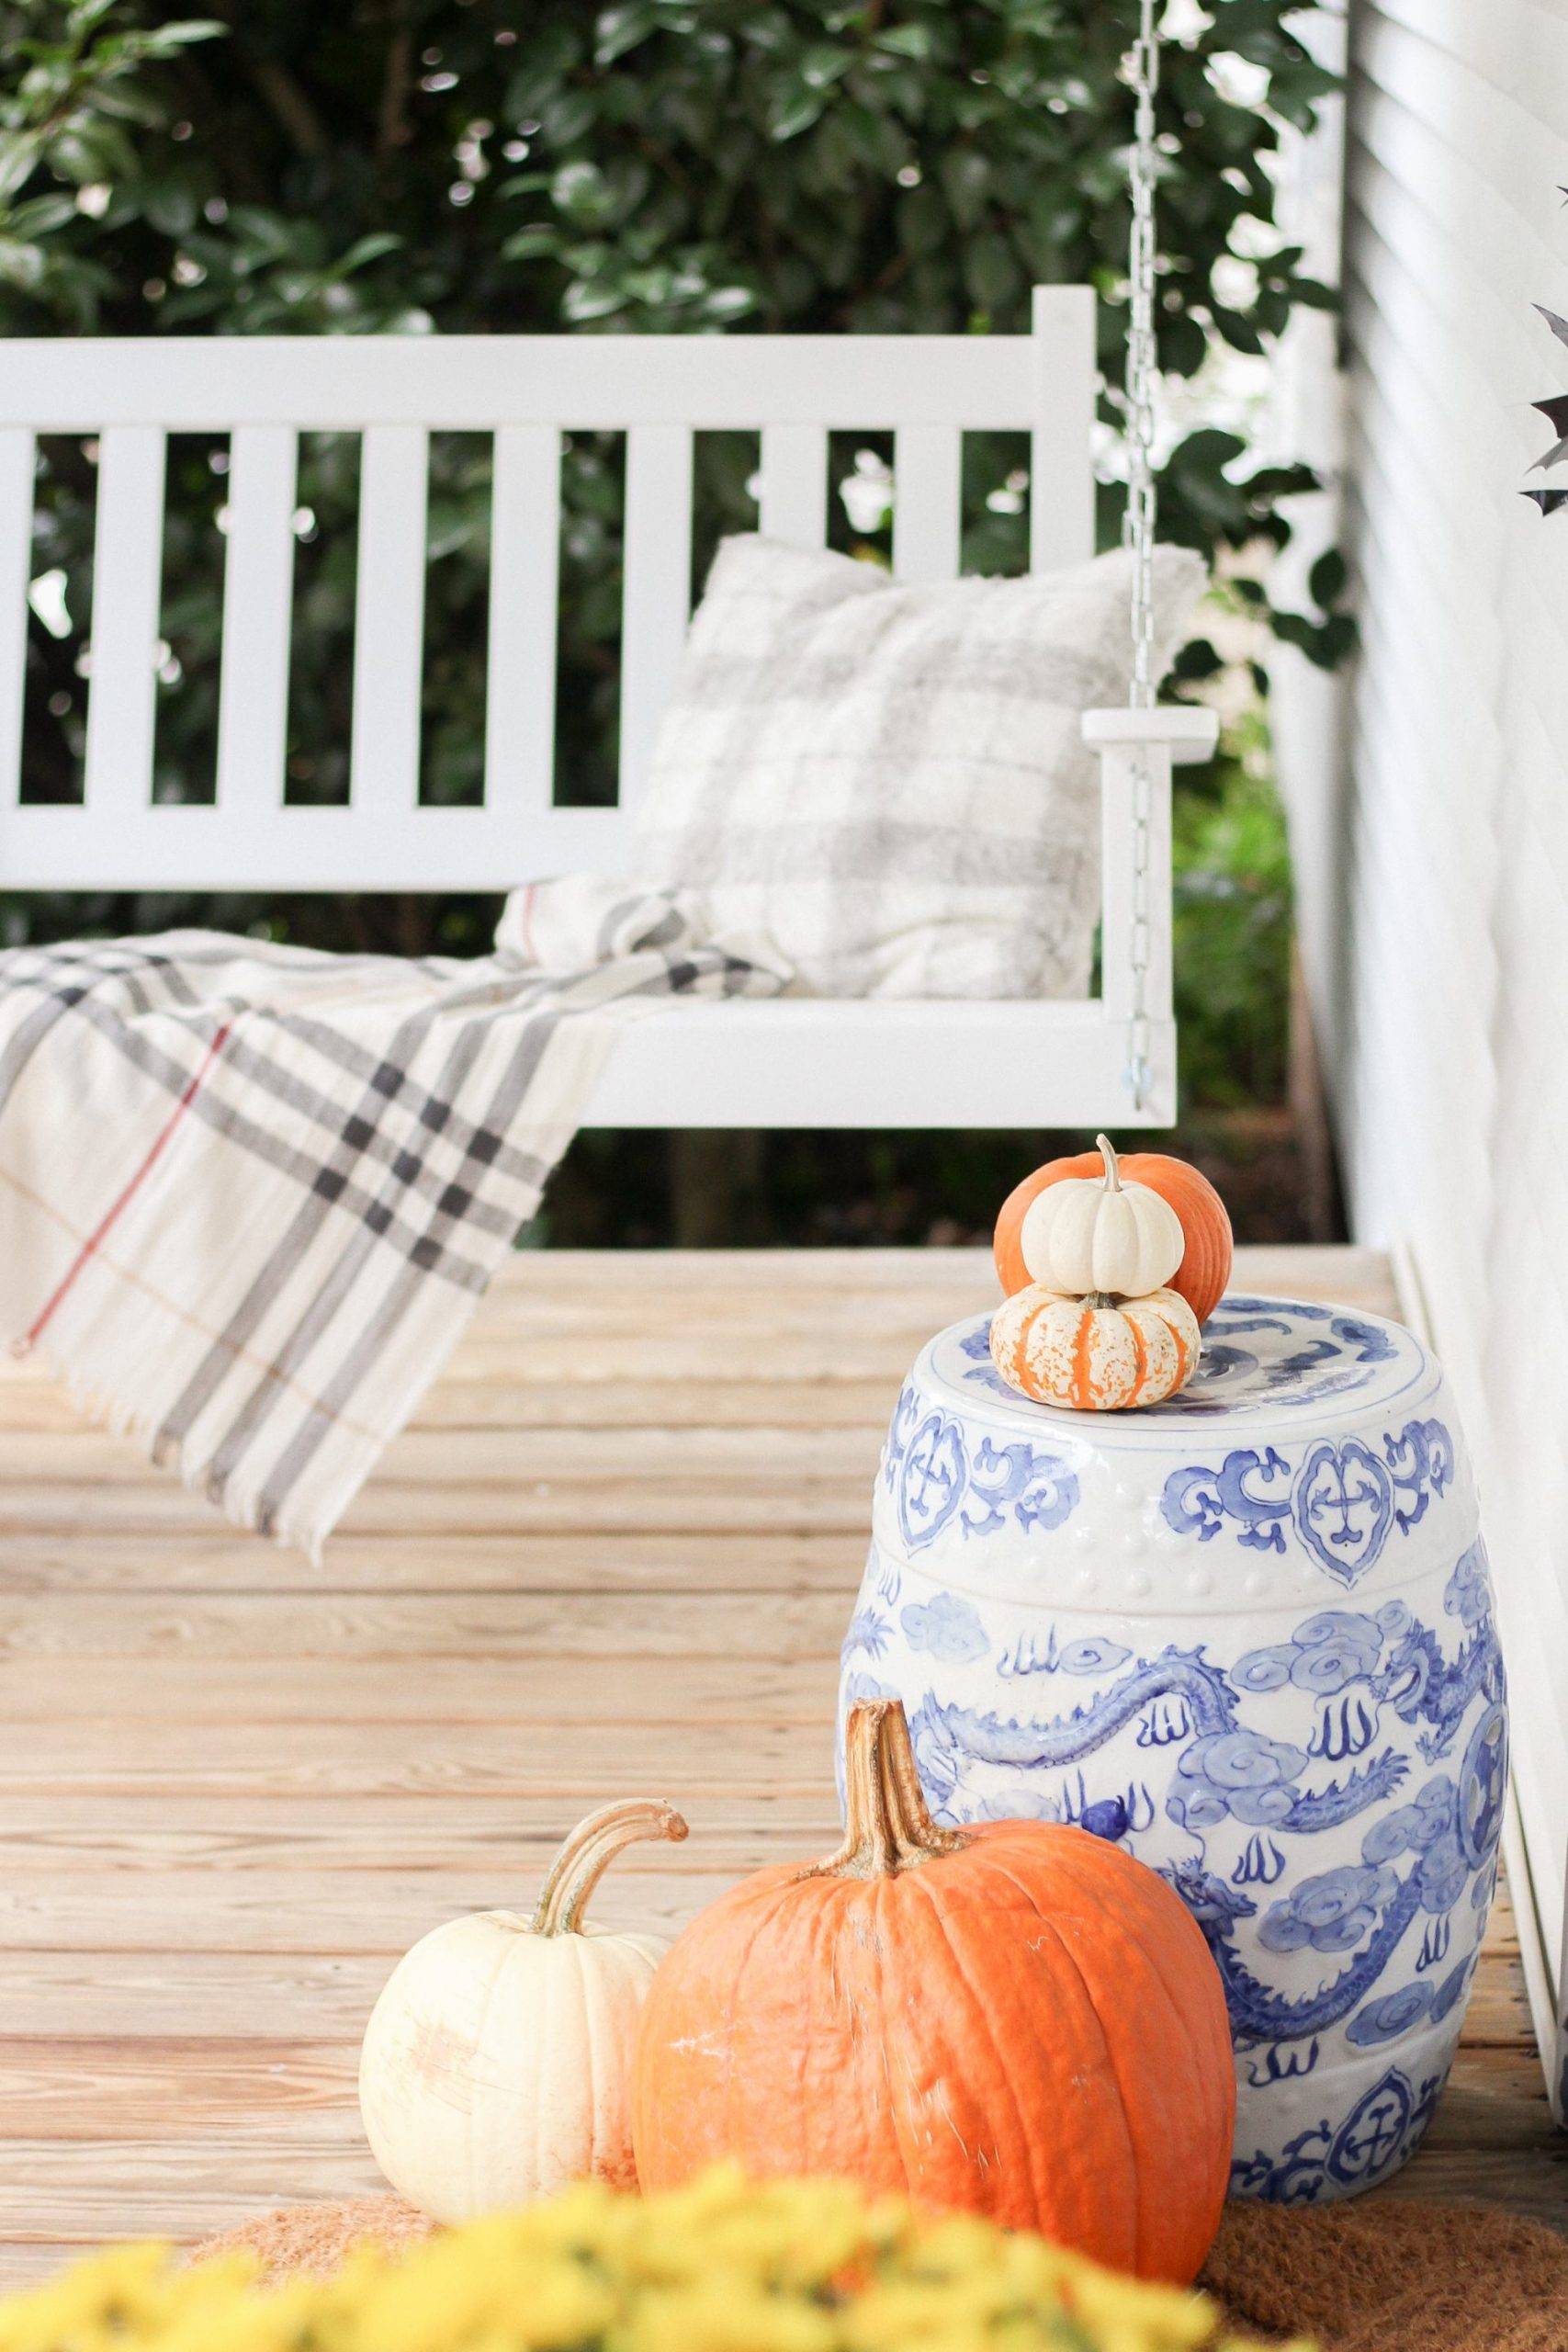 pumpkins and blue and white garden stool